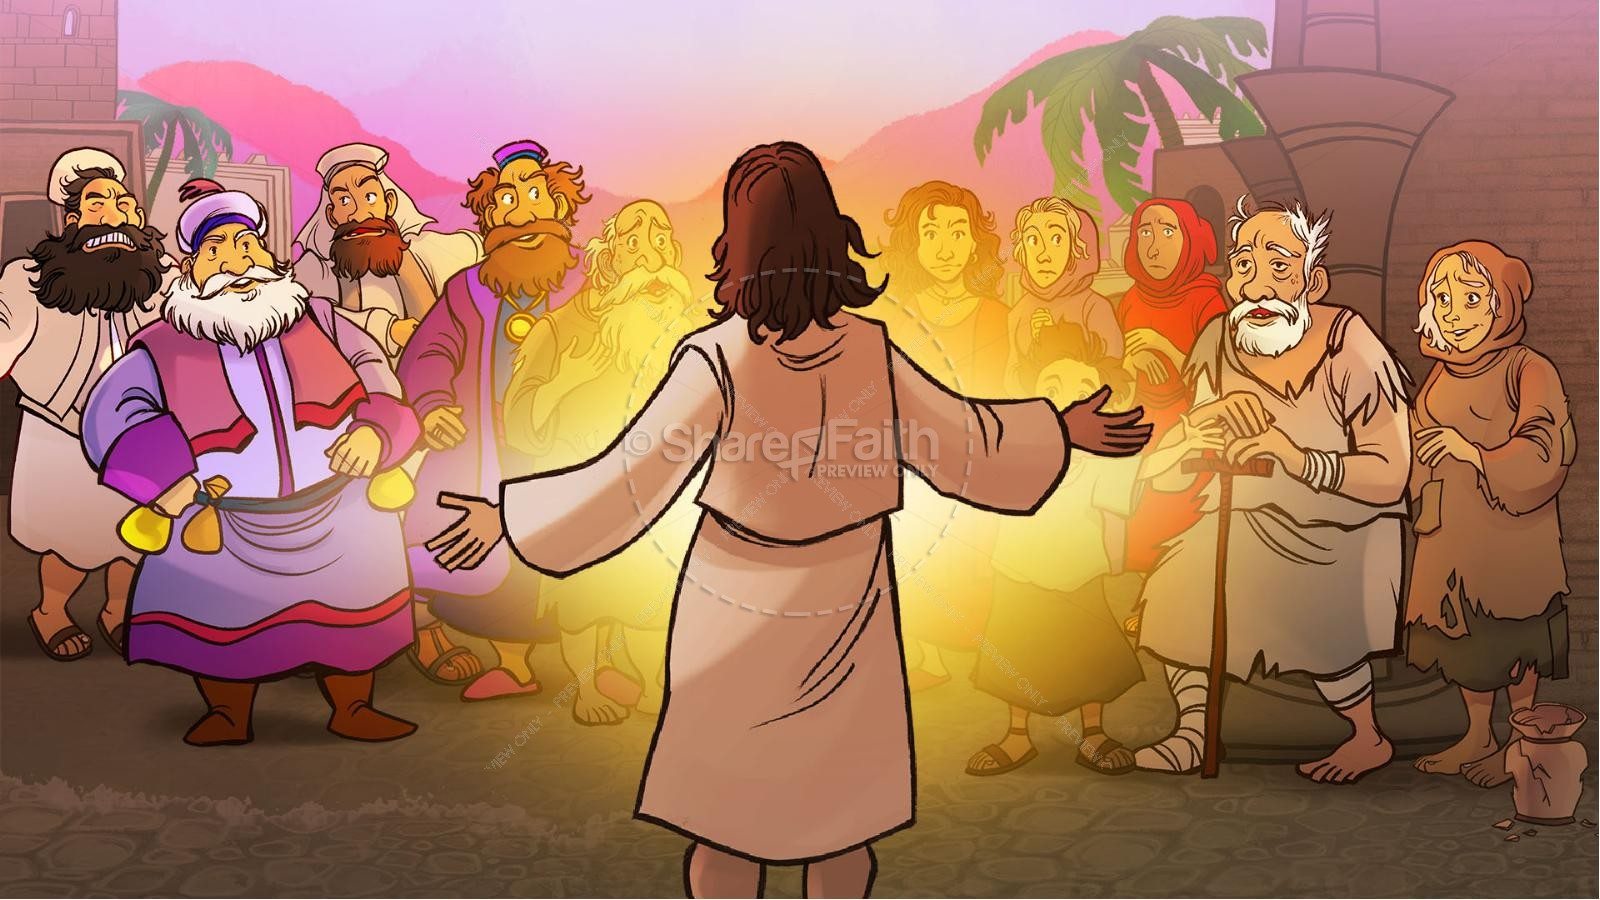 Luke 15 The Parables of the Lost Sheep and Coin Kids Bible Story   slide 2